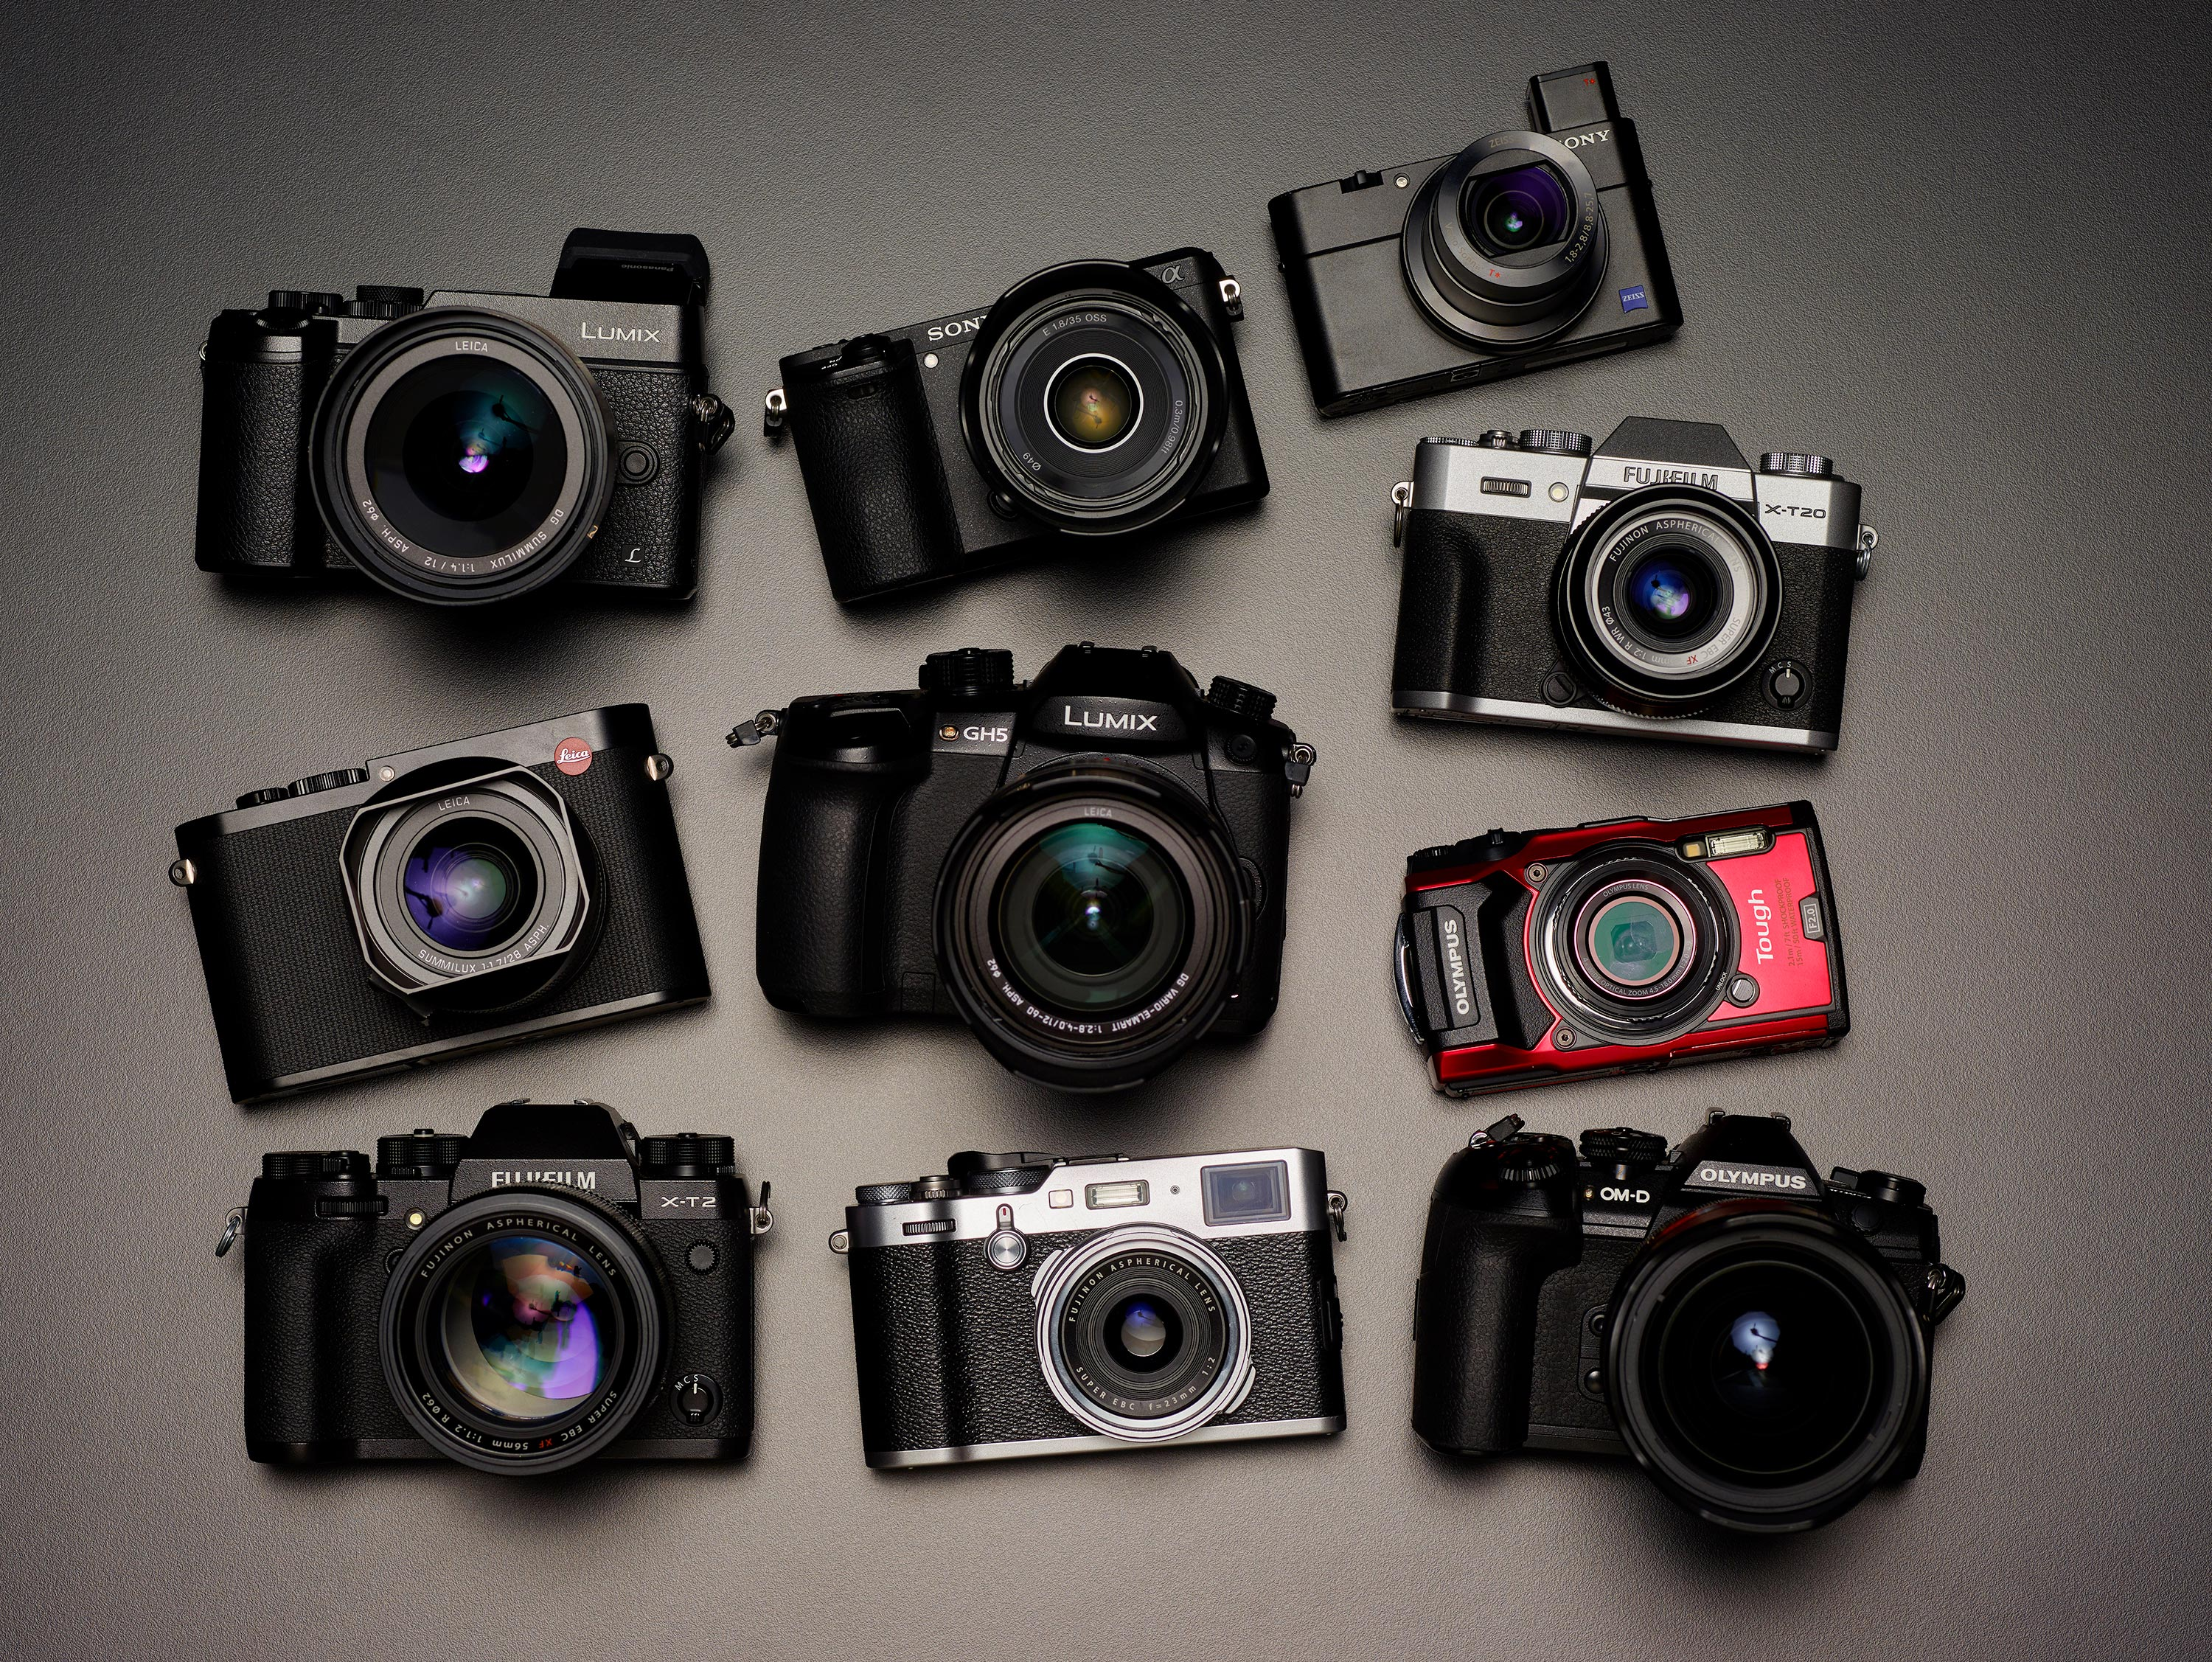 Top 10 Compact Cameras for Travelers